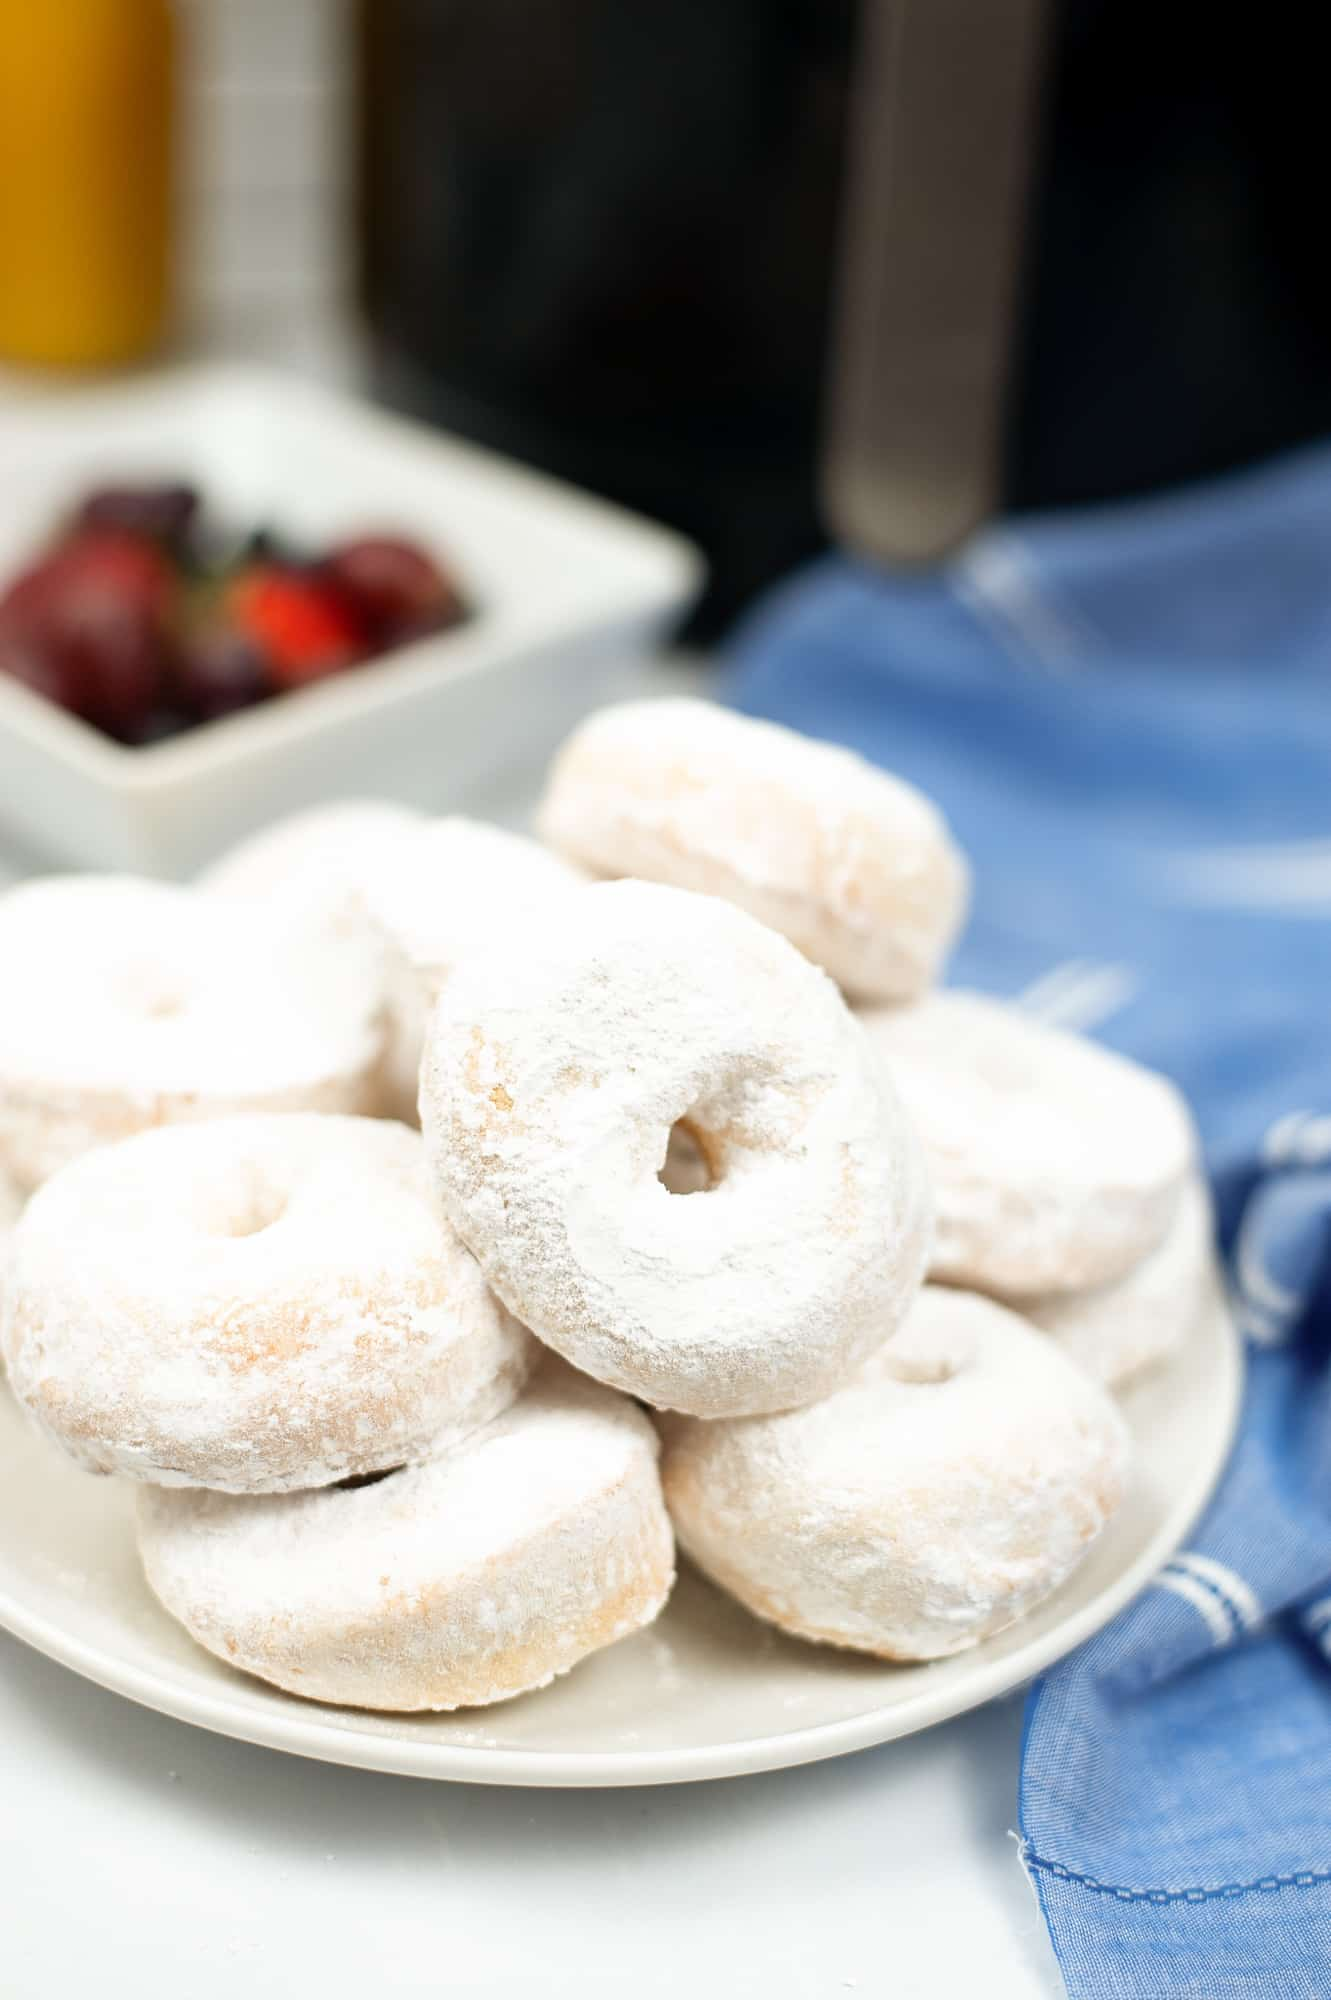 air fryer donuts with powdered sugar on them